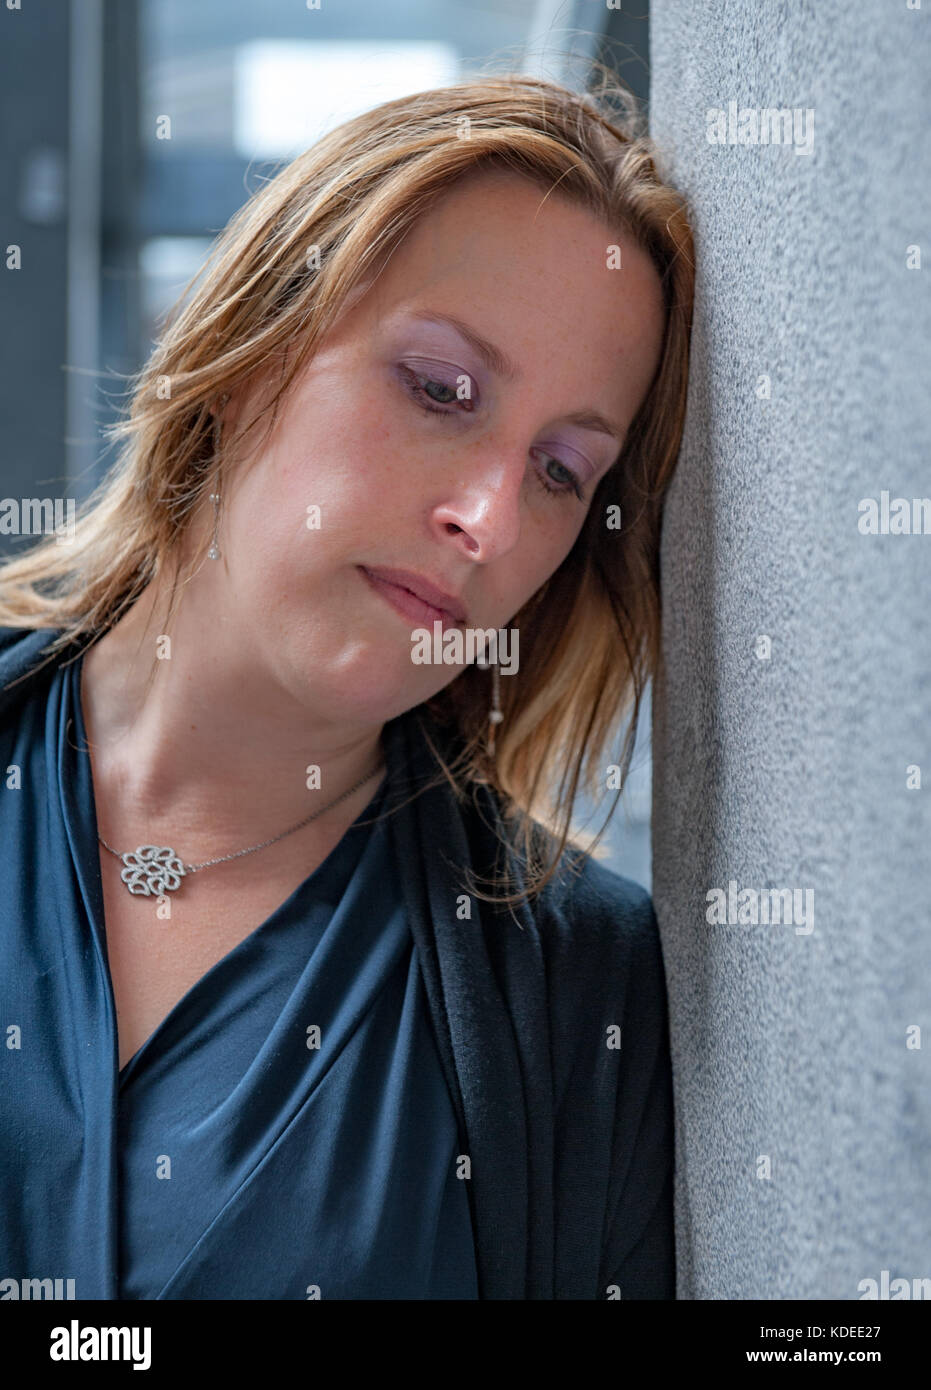 Woman resting her head against a wall - Stock Image